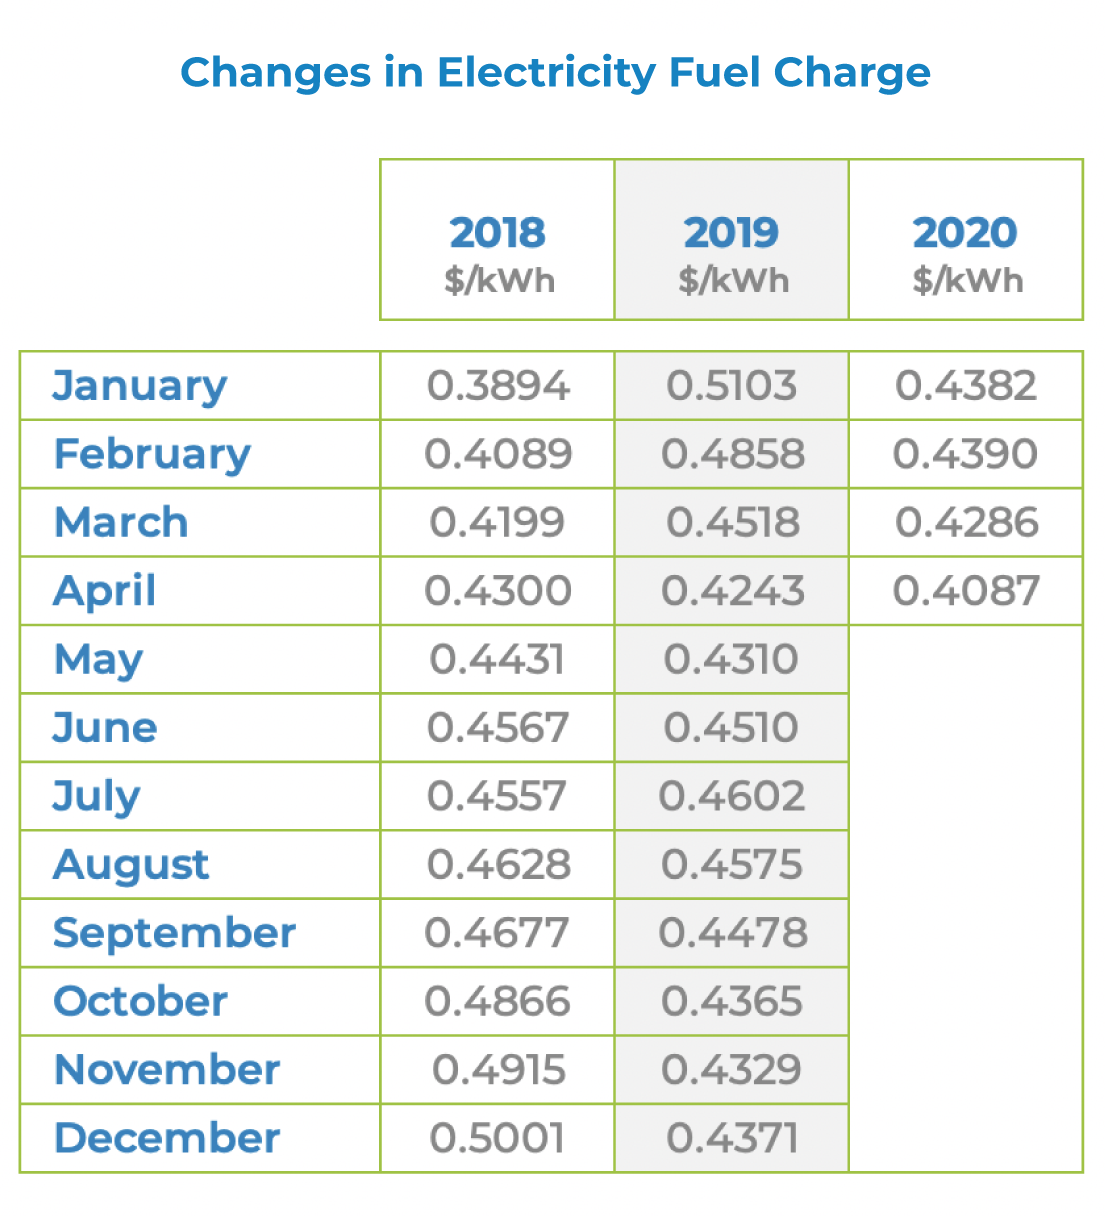 fuel charge changes